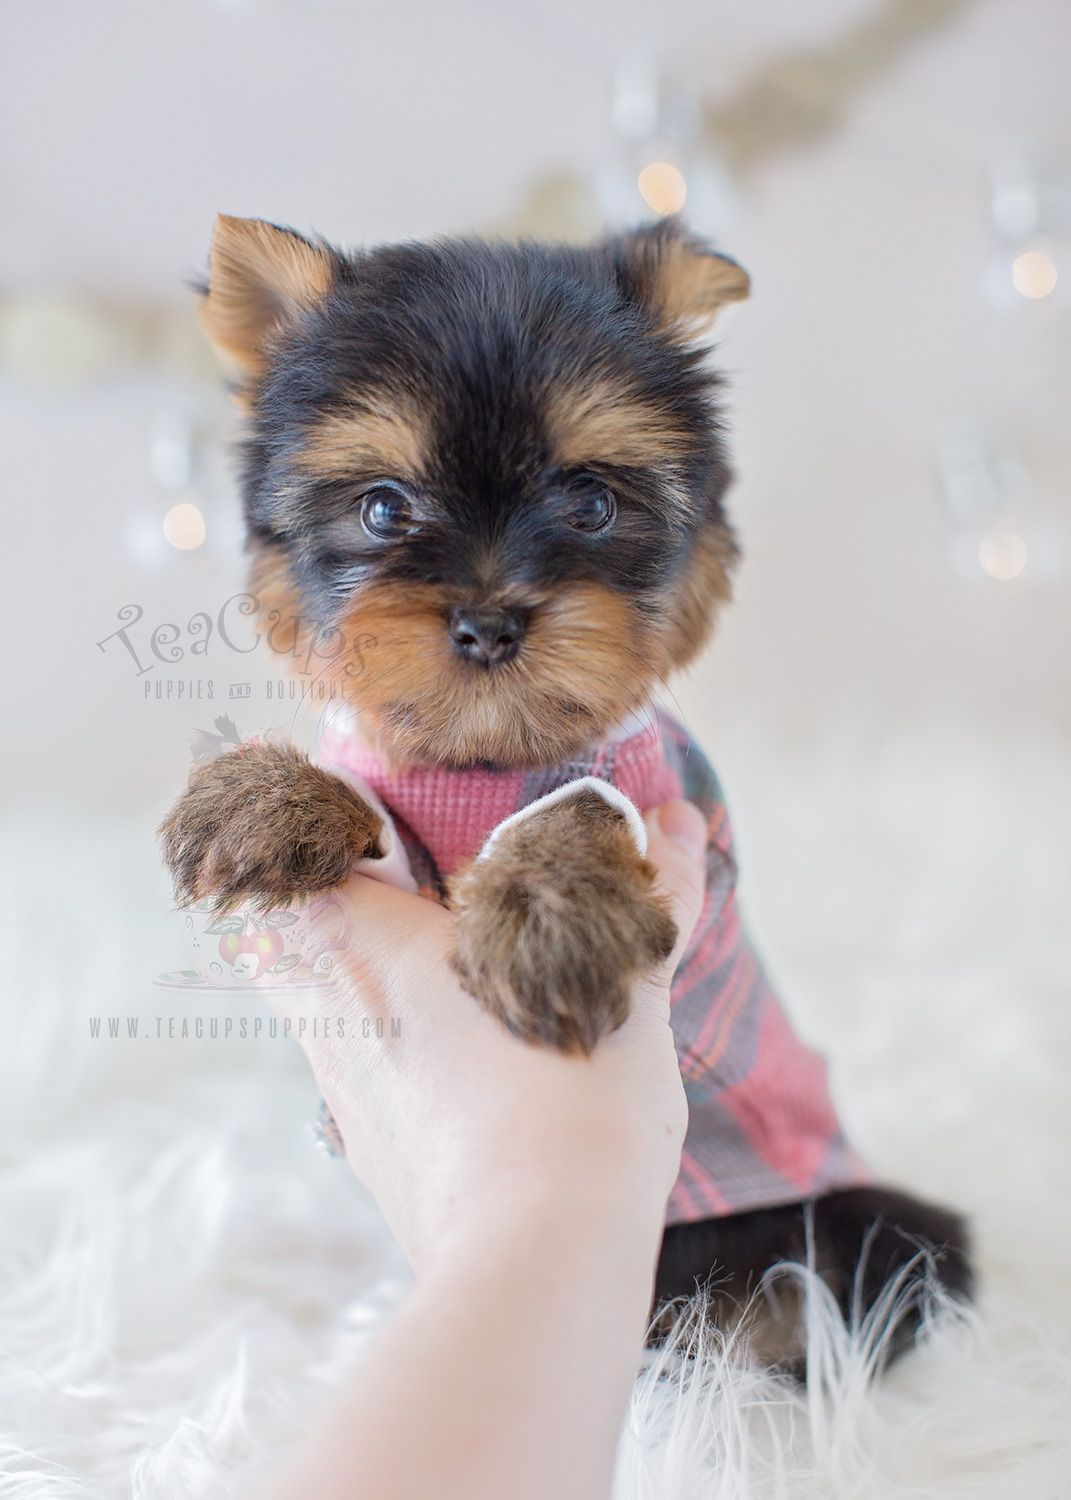 For sale teacup puppies tiny yorkie puppy hamsters